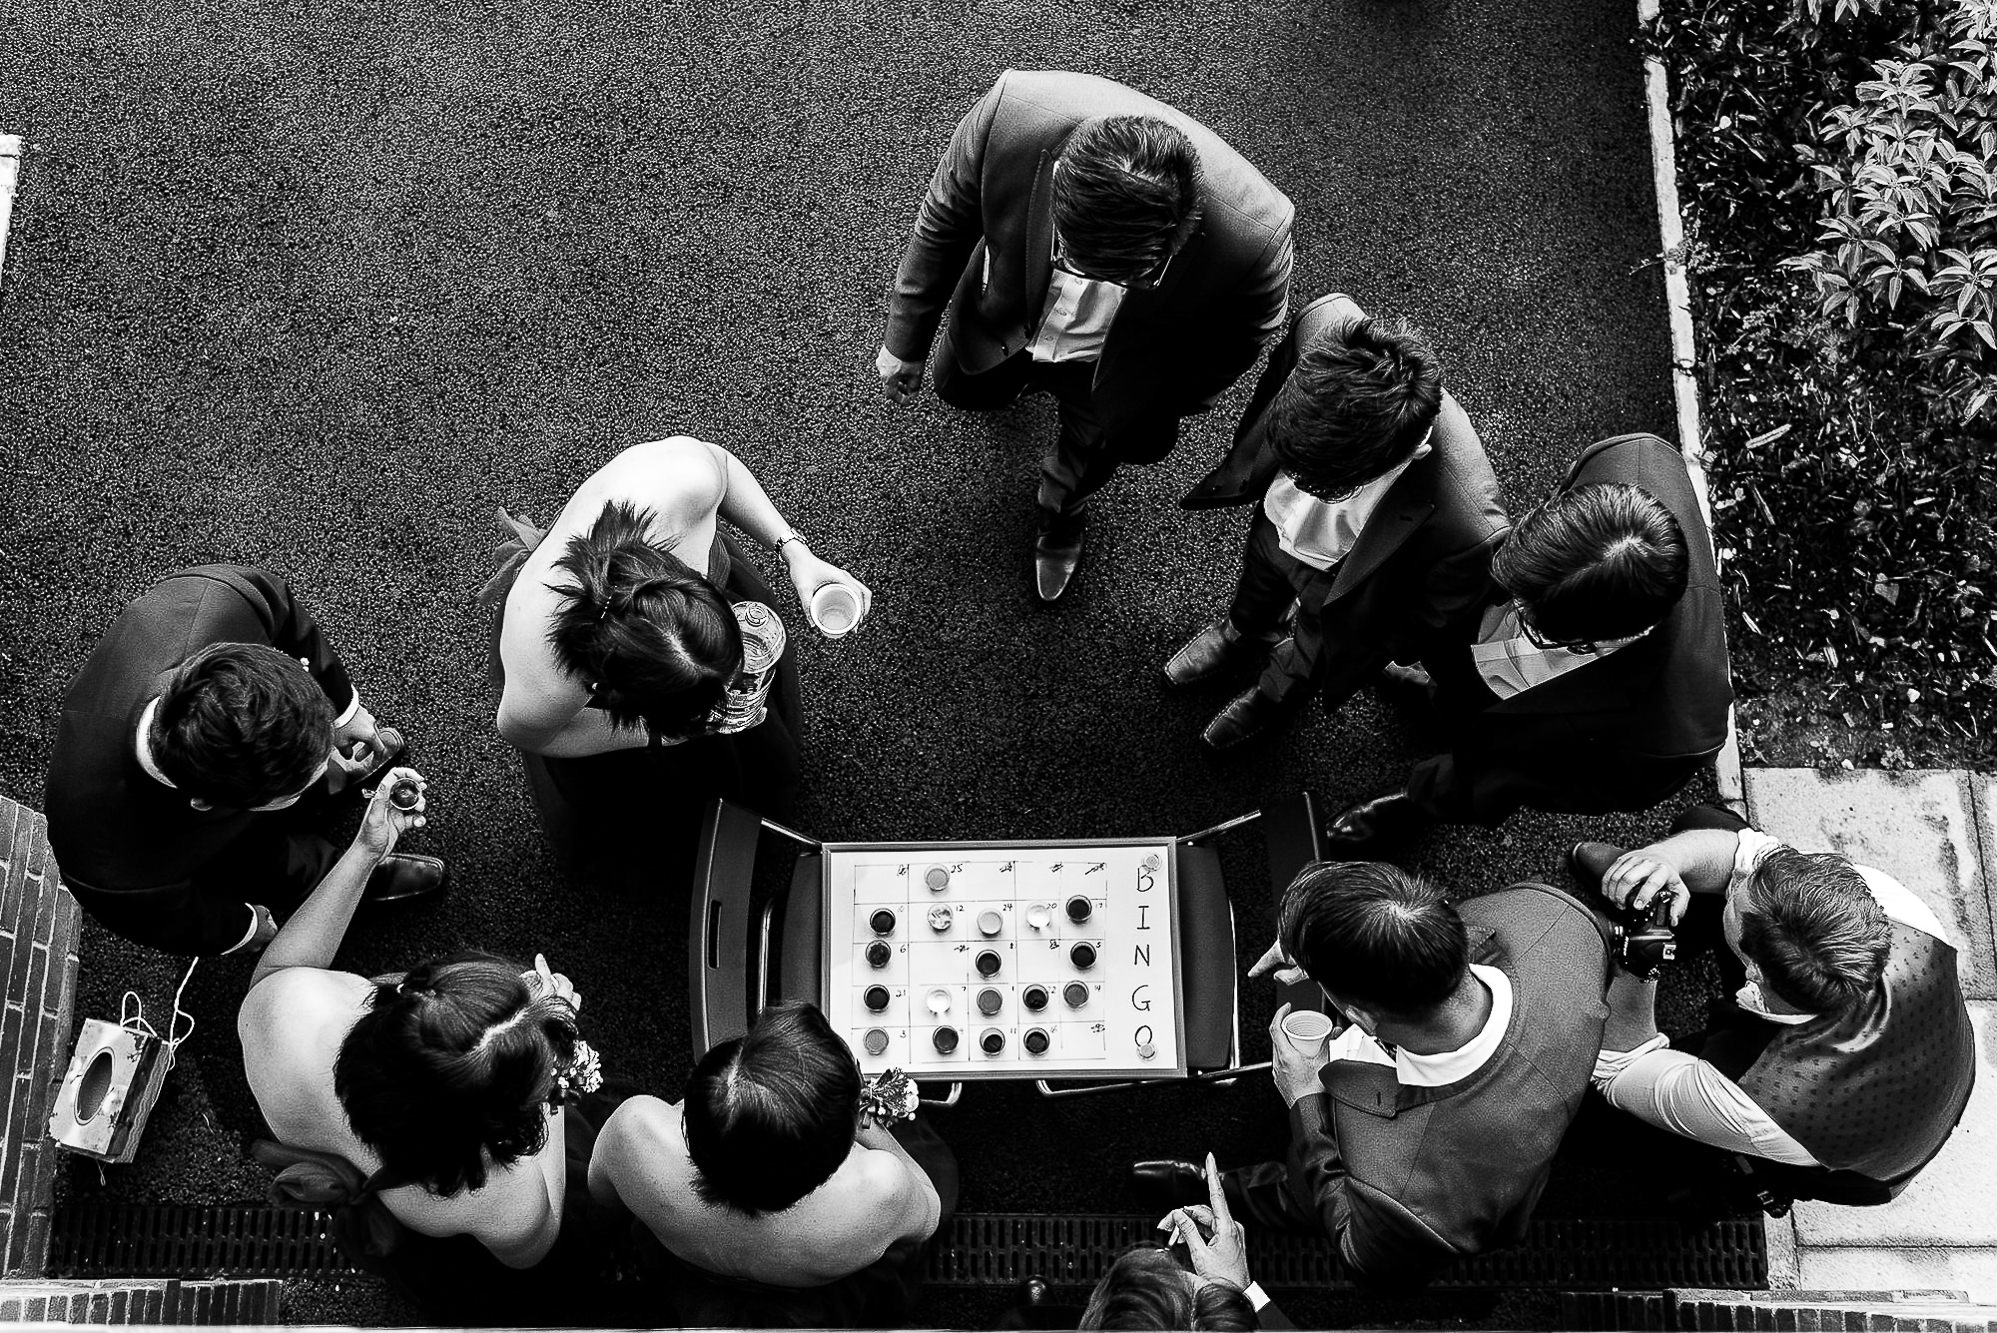 Shot from above of people playing game